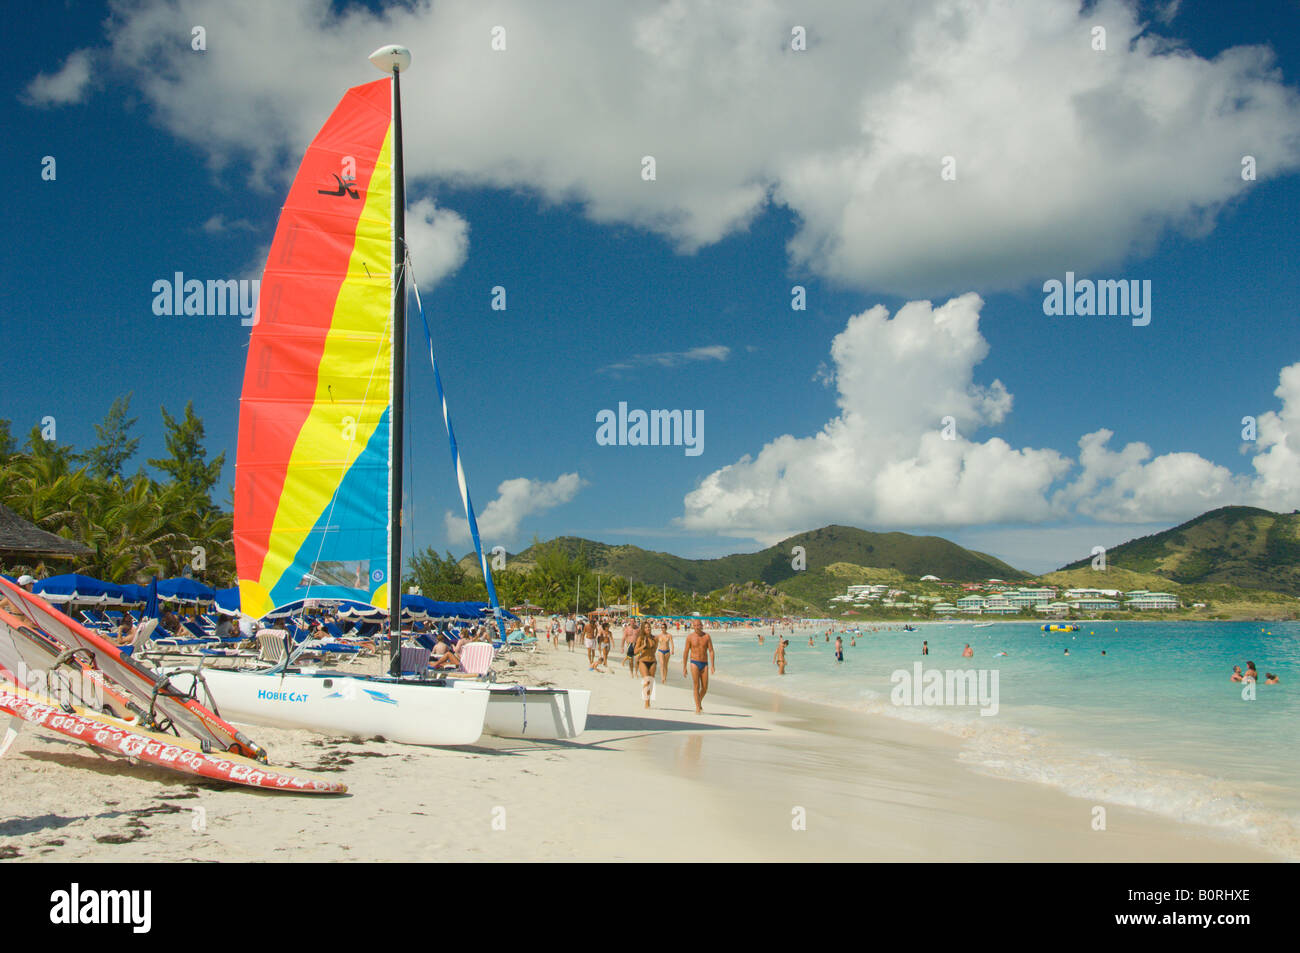 Orient Beach sail boat and beach activities in Saint Martin French Protectorate - Stock Image